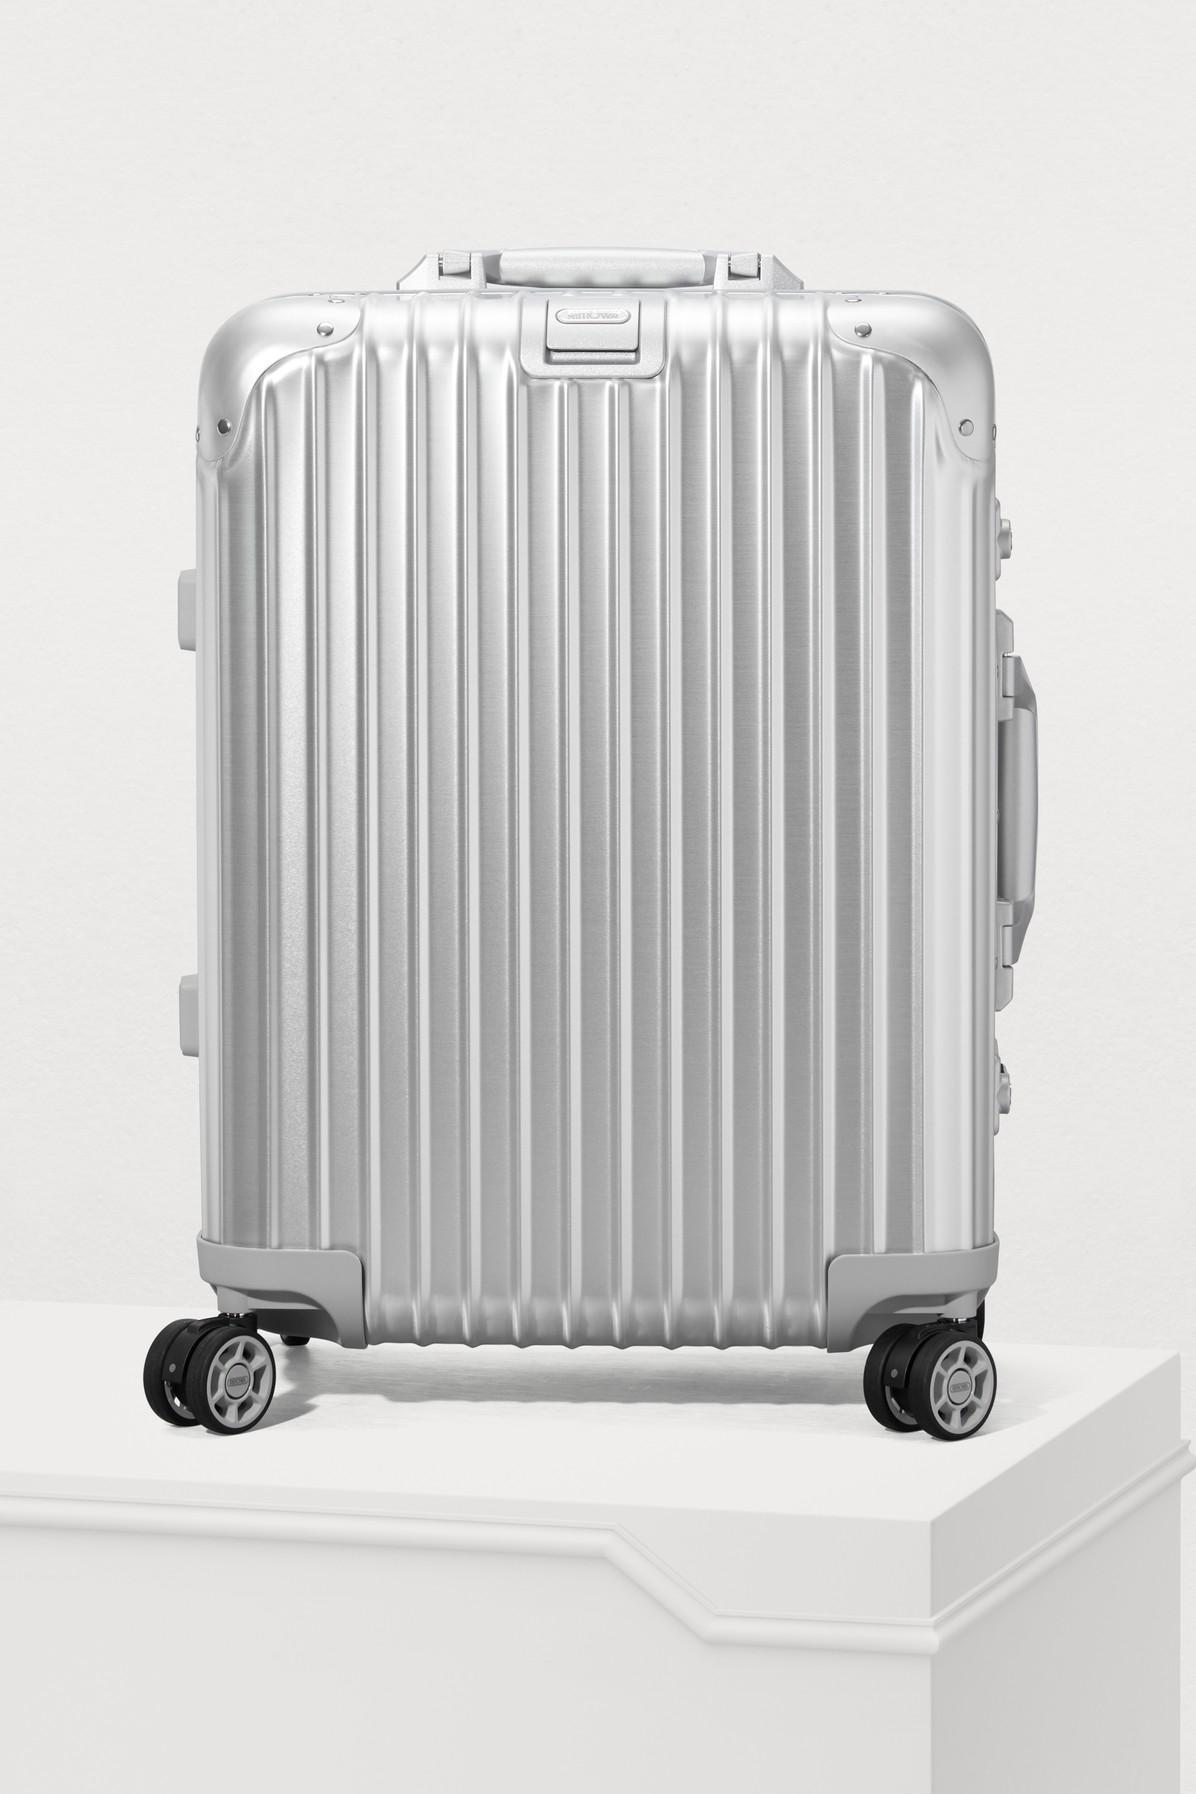 topas cabins camera cases multiwheel top olympus review rimowa cabin stealth gracefuldegrade digital